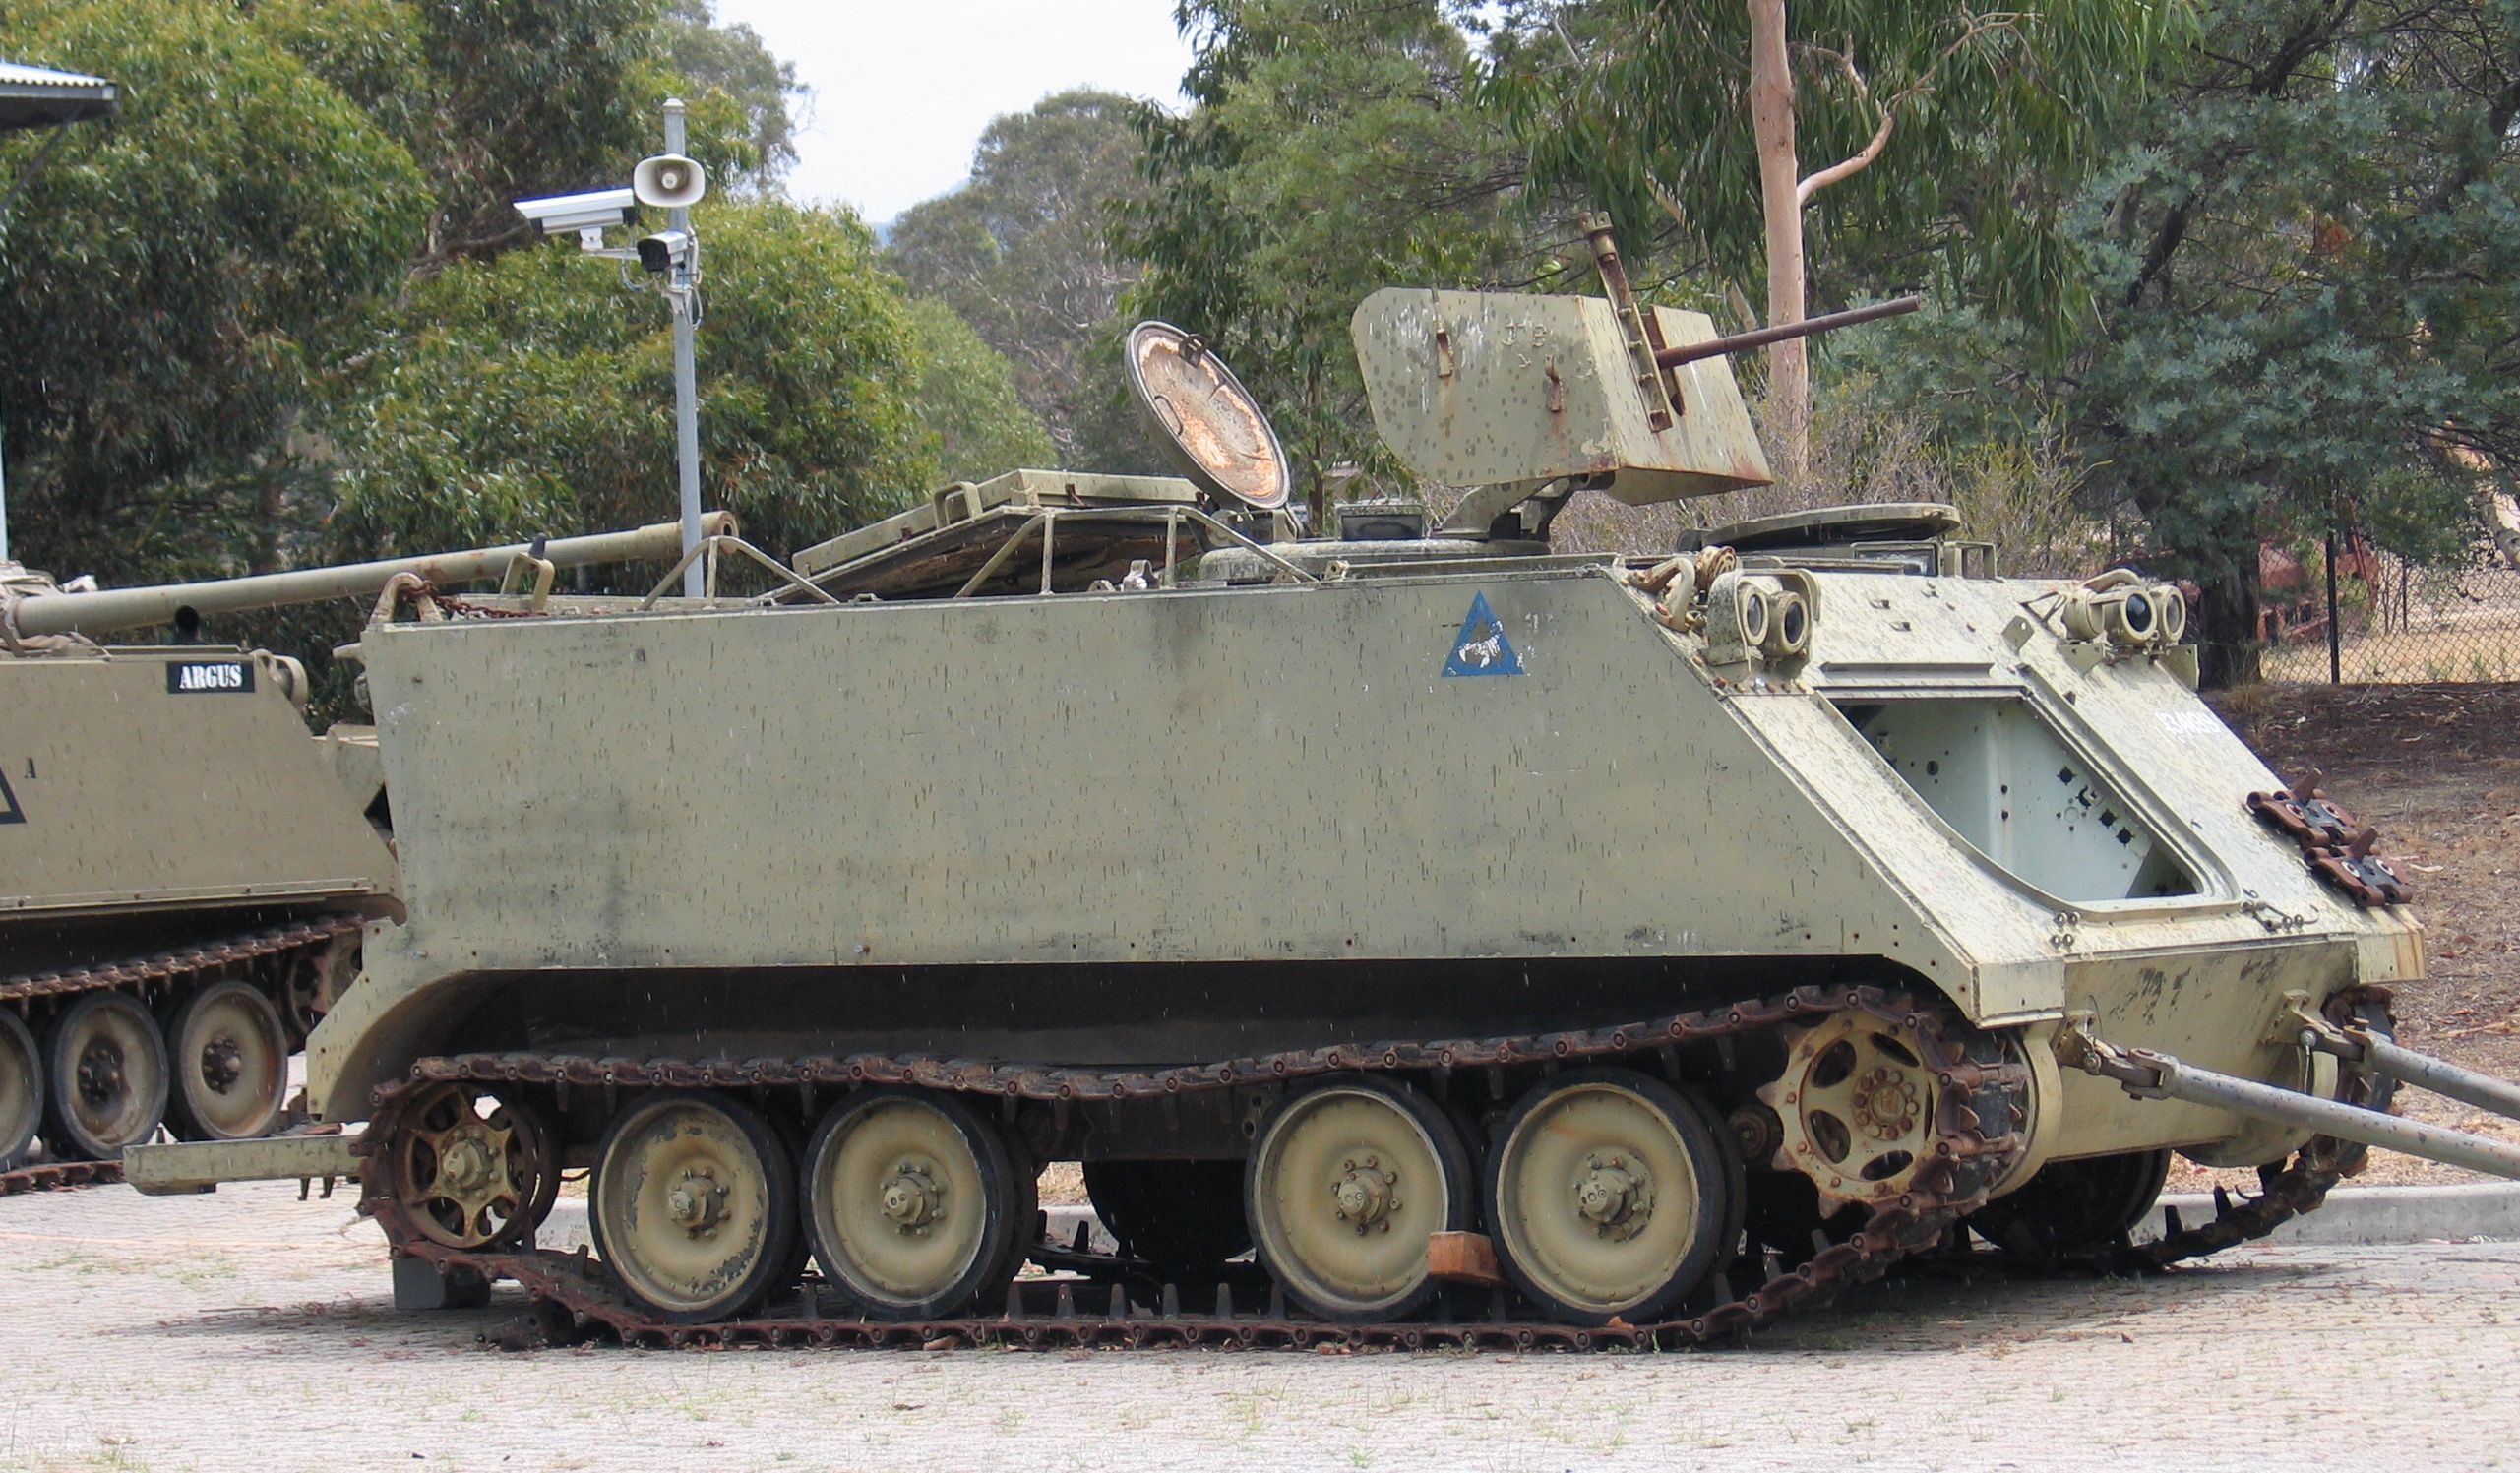 Armored Vehicles For Sale >> File:Puckapunyal-M113-3-1.jpg - Wikimedia Commons